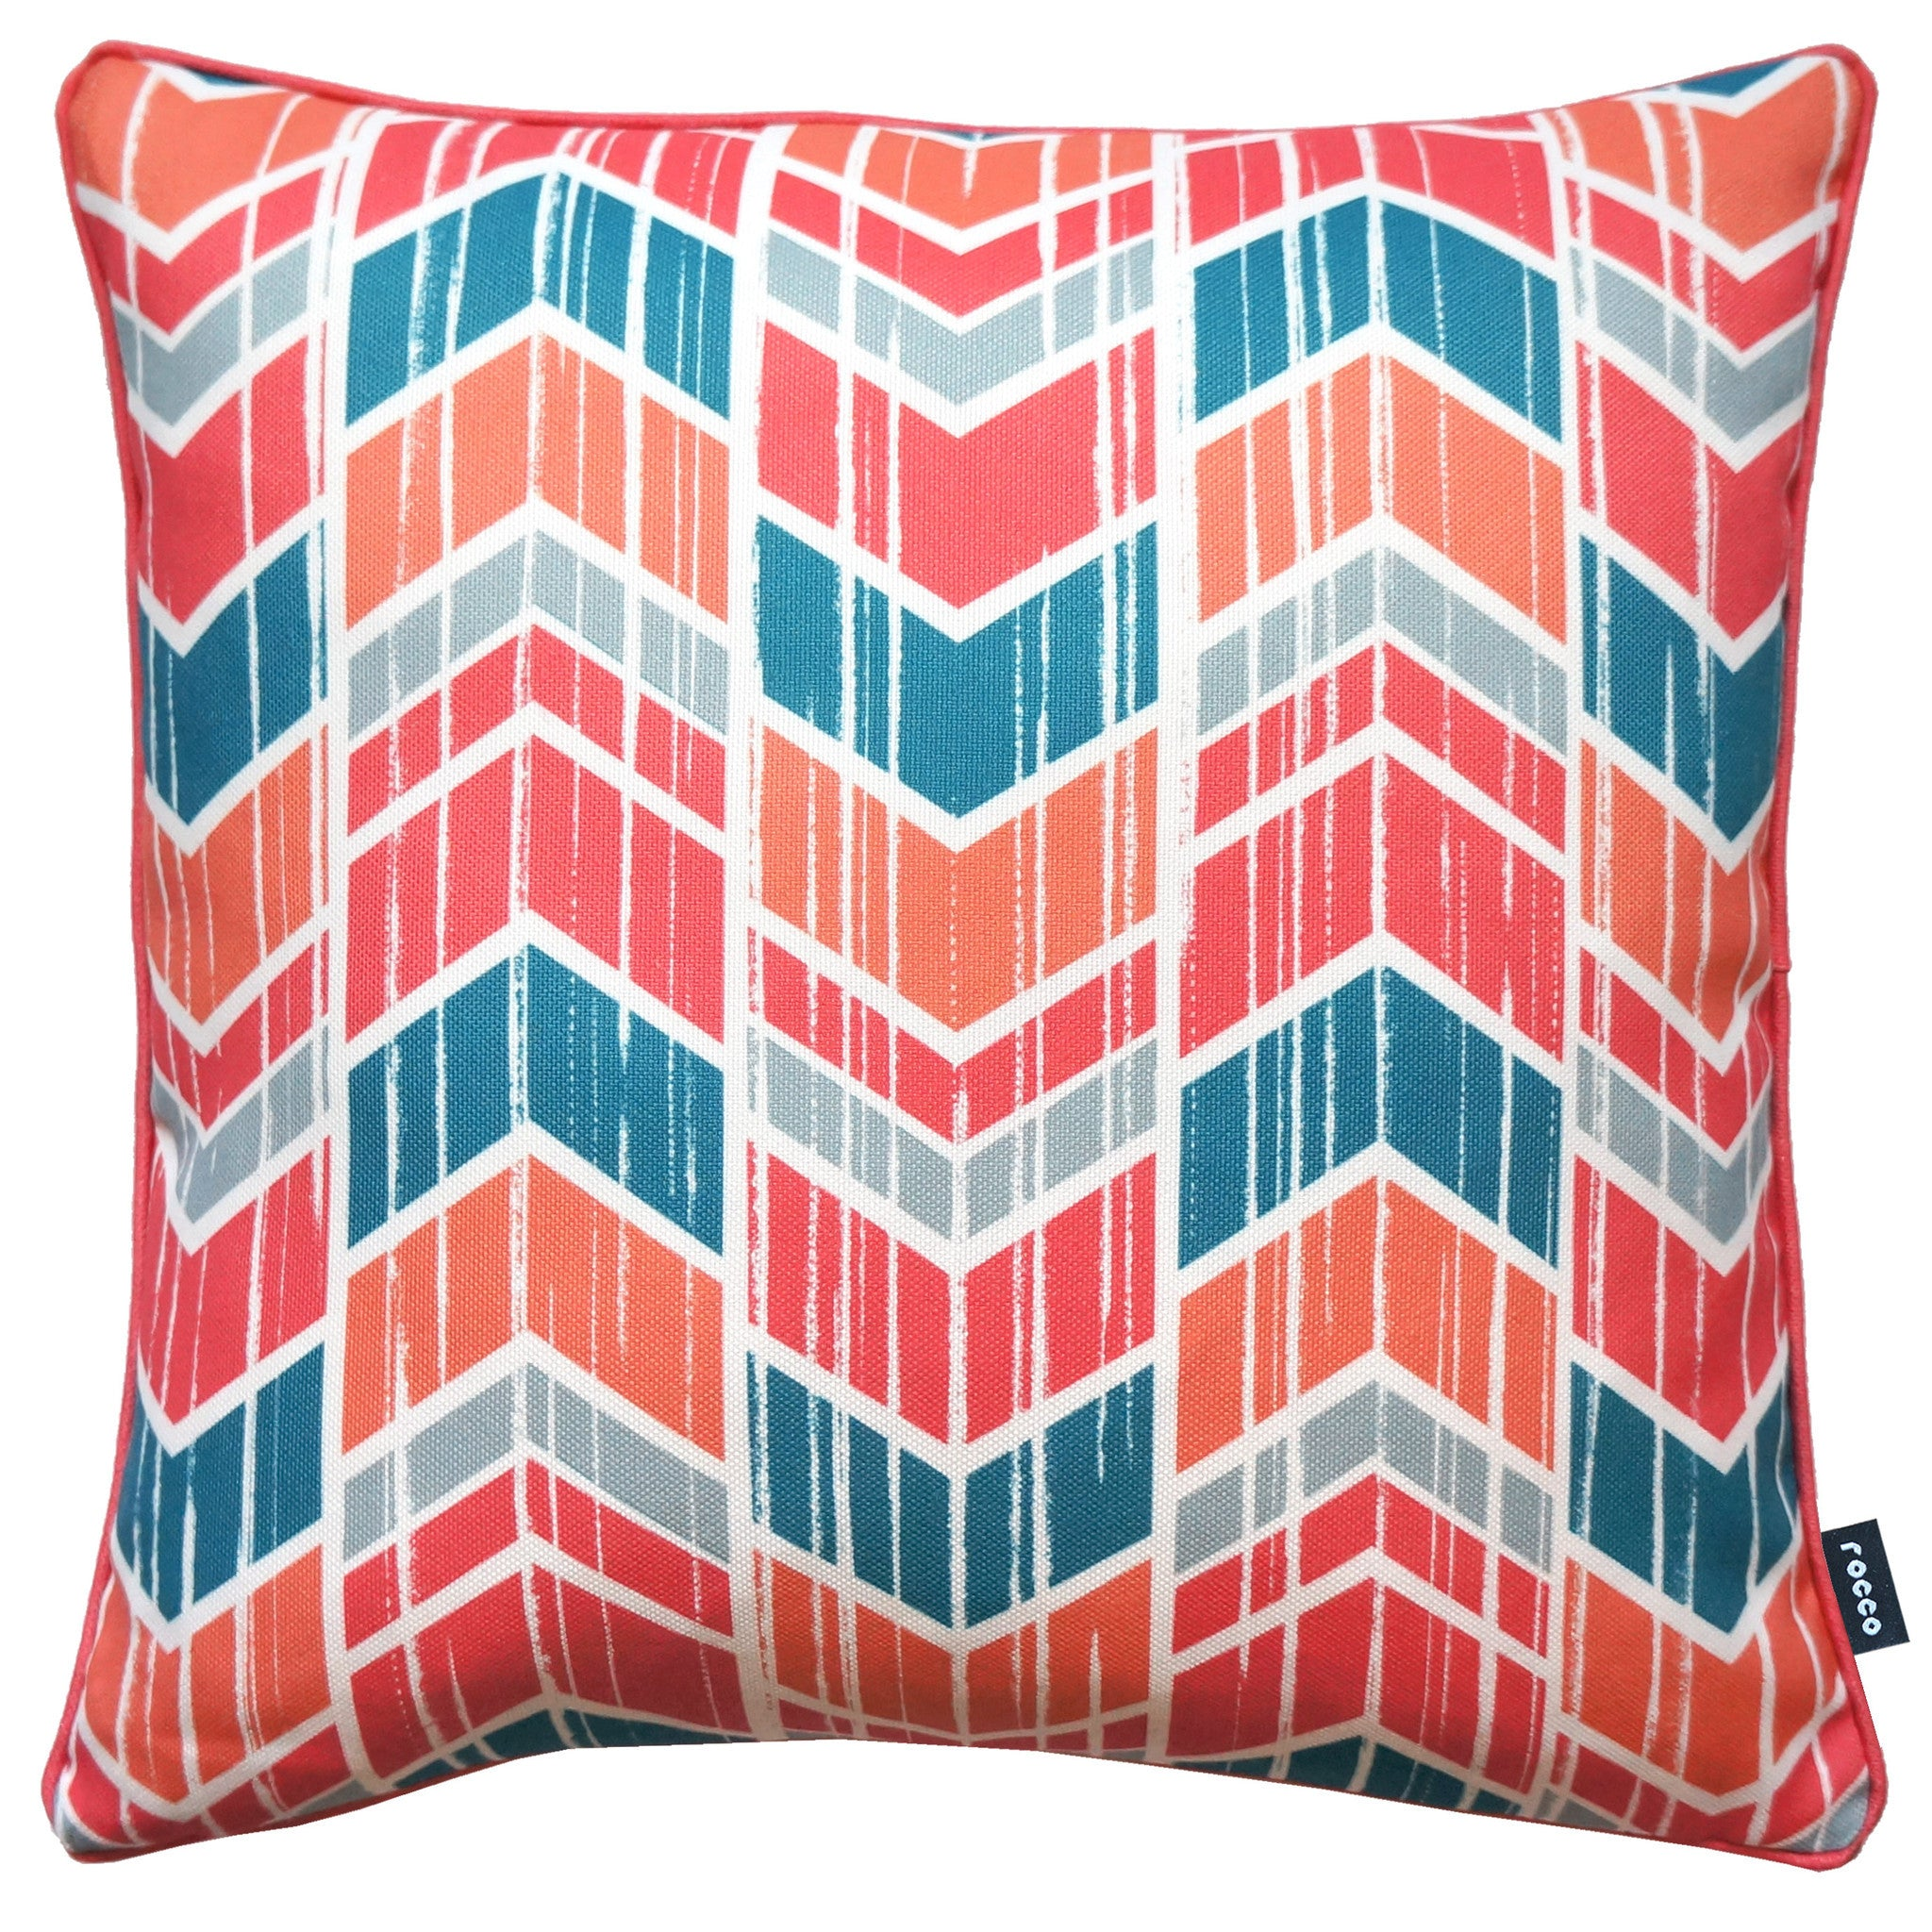 Rocco Cheveron Coral 43 x 43cm Filled Cushion - Set Of 4